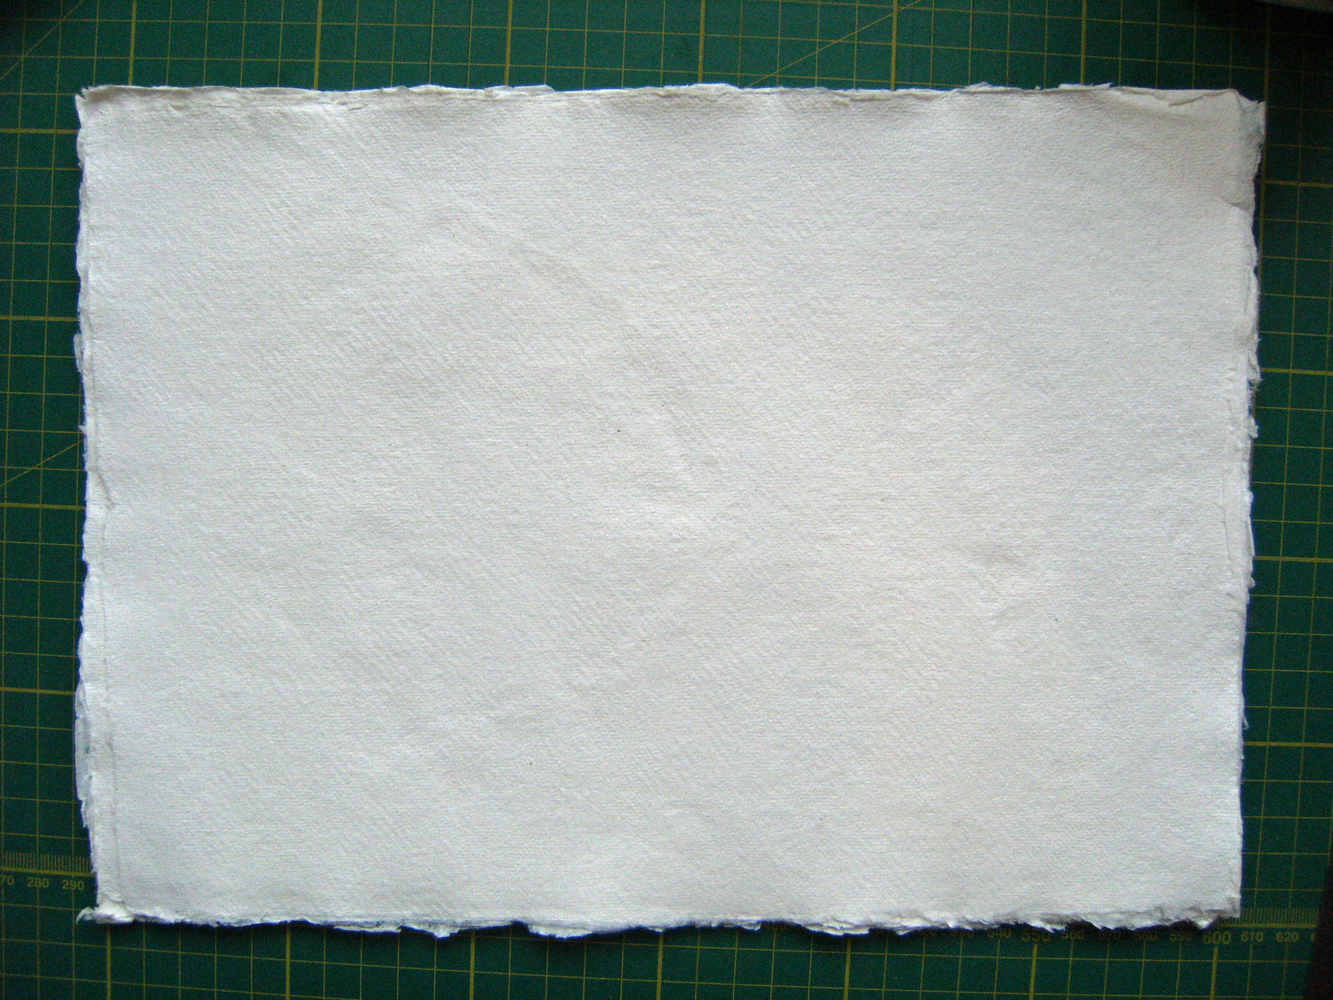 cotton rag paper Cotton paper, also known as rag paper, is made using cotton linters or cotton from used cloth (rags) as the primary material important documents are often printed on.